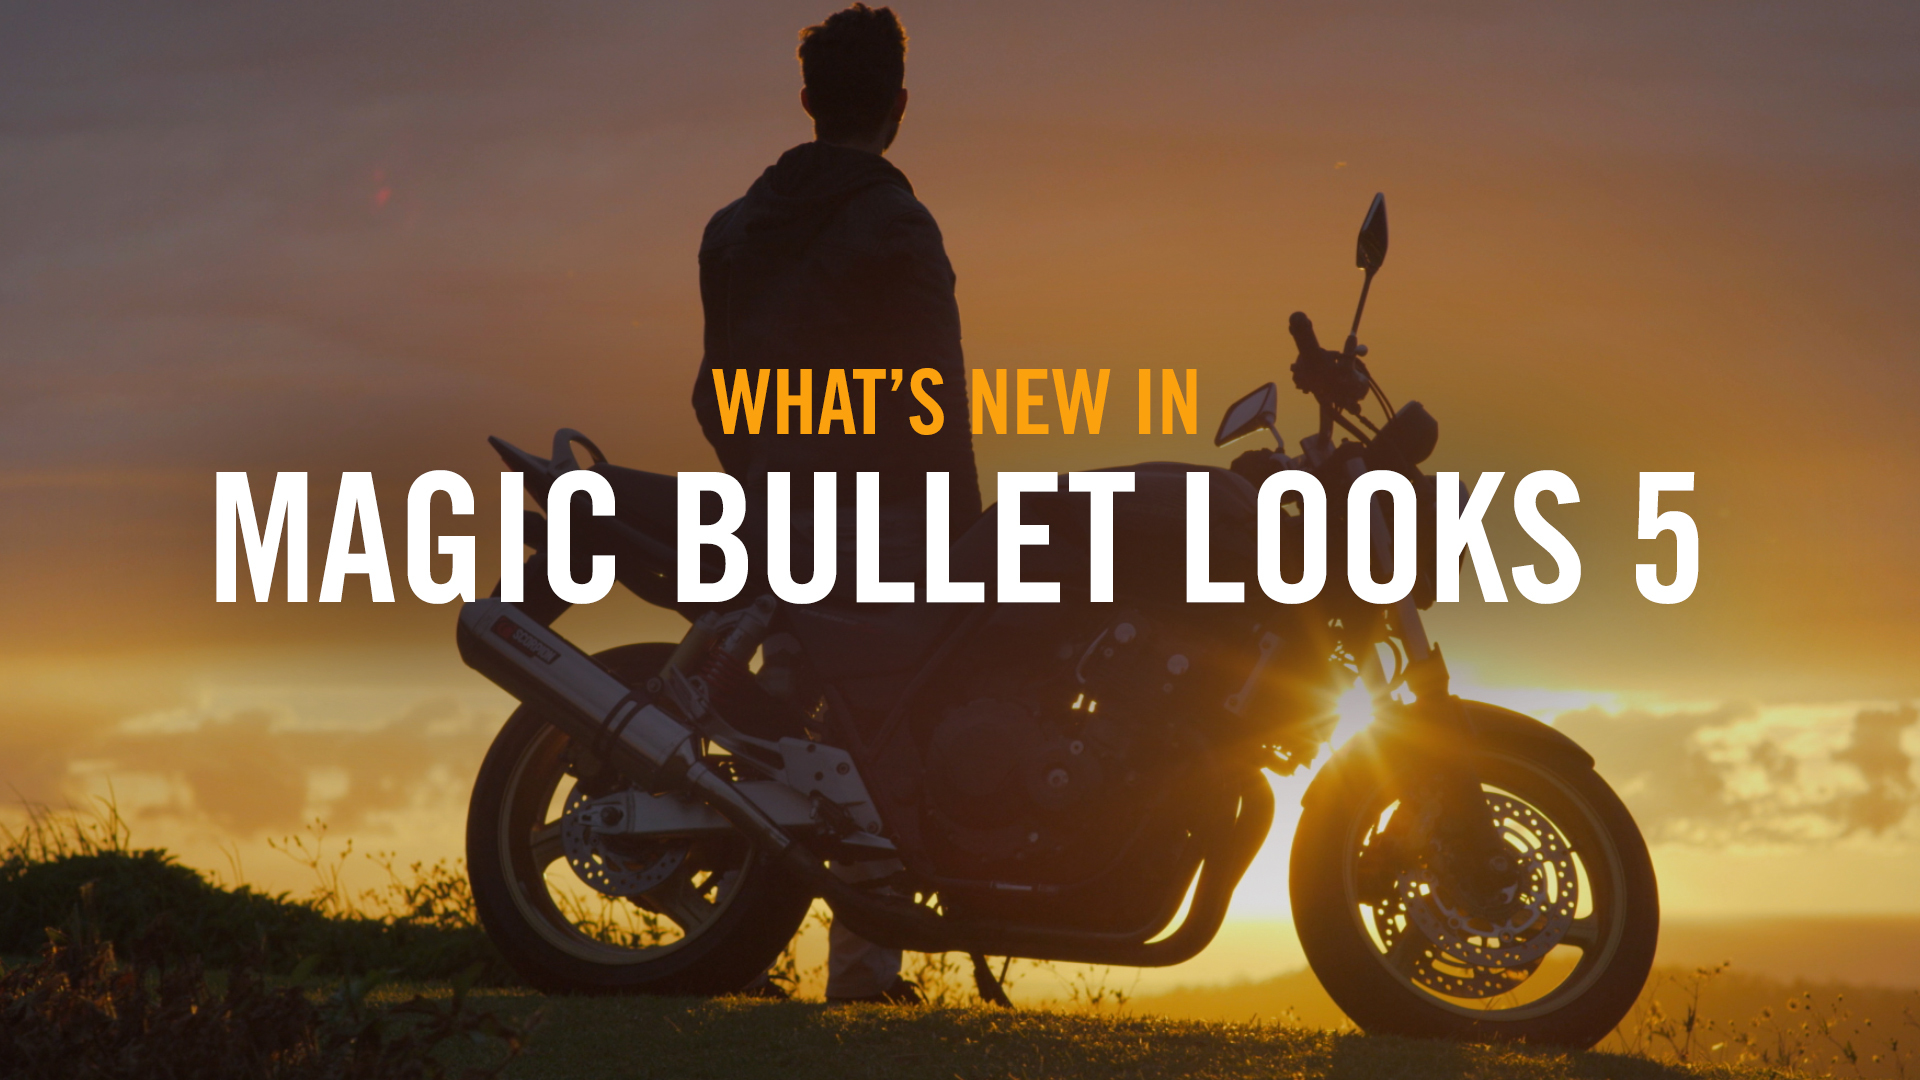 What's New with Magic Bullet Looks 5